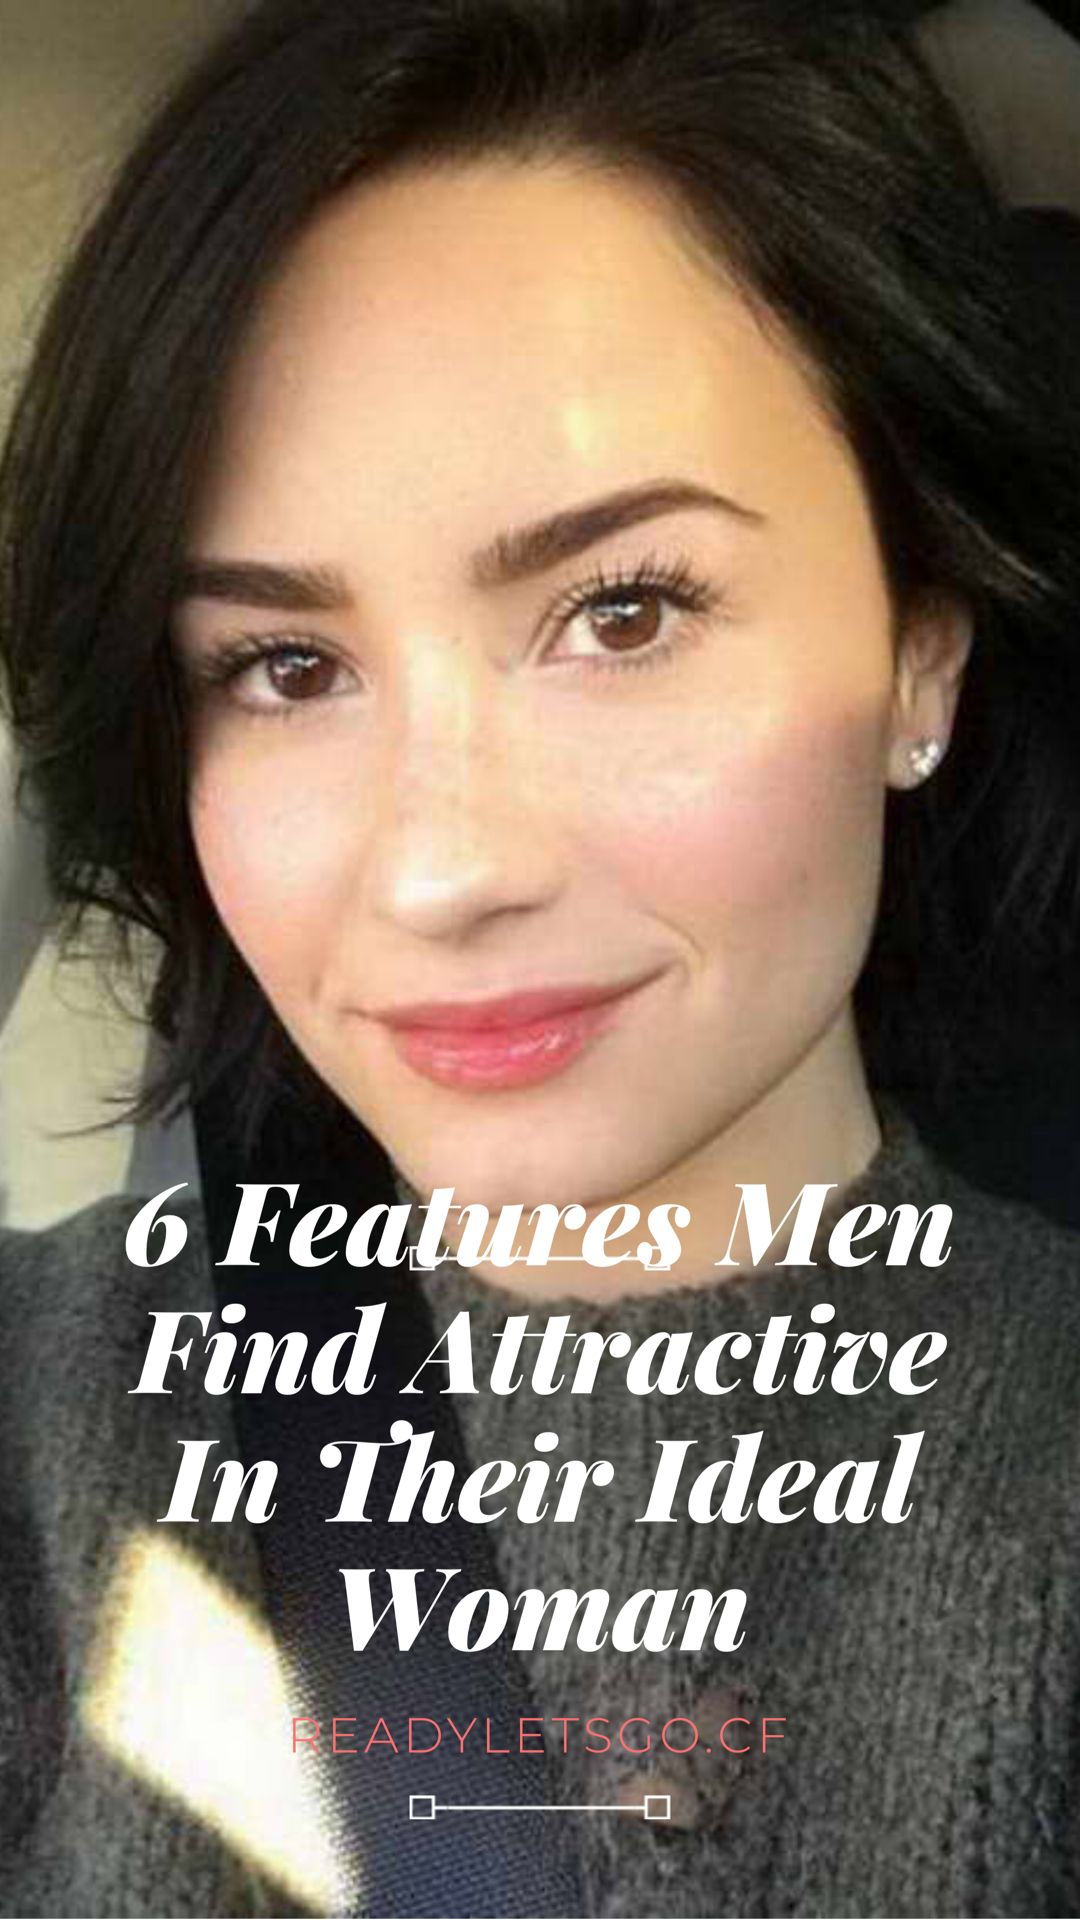 What features do men find attractive